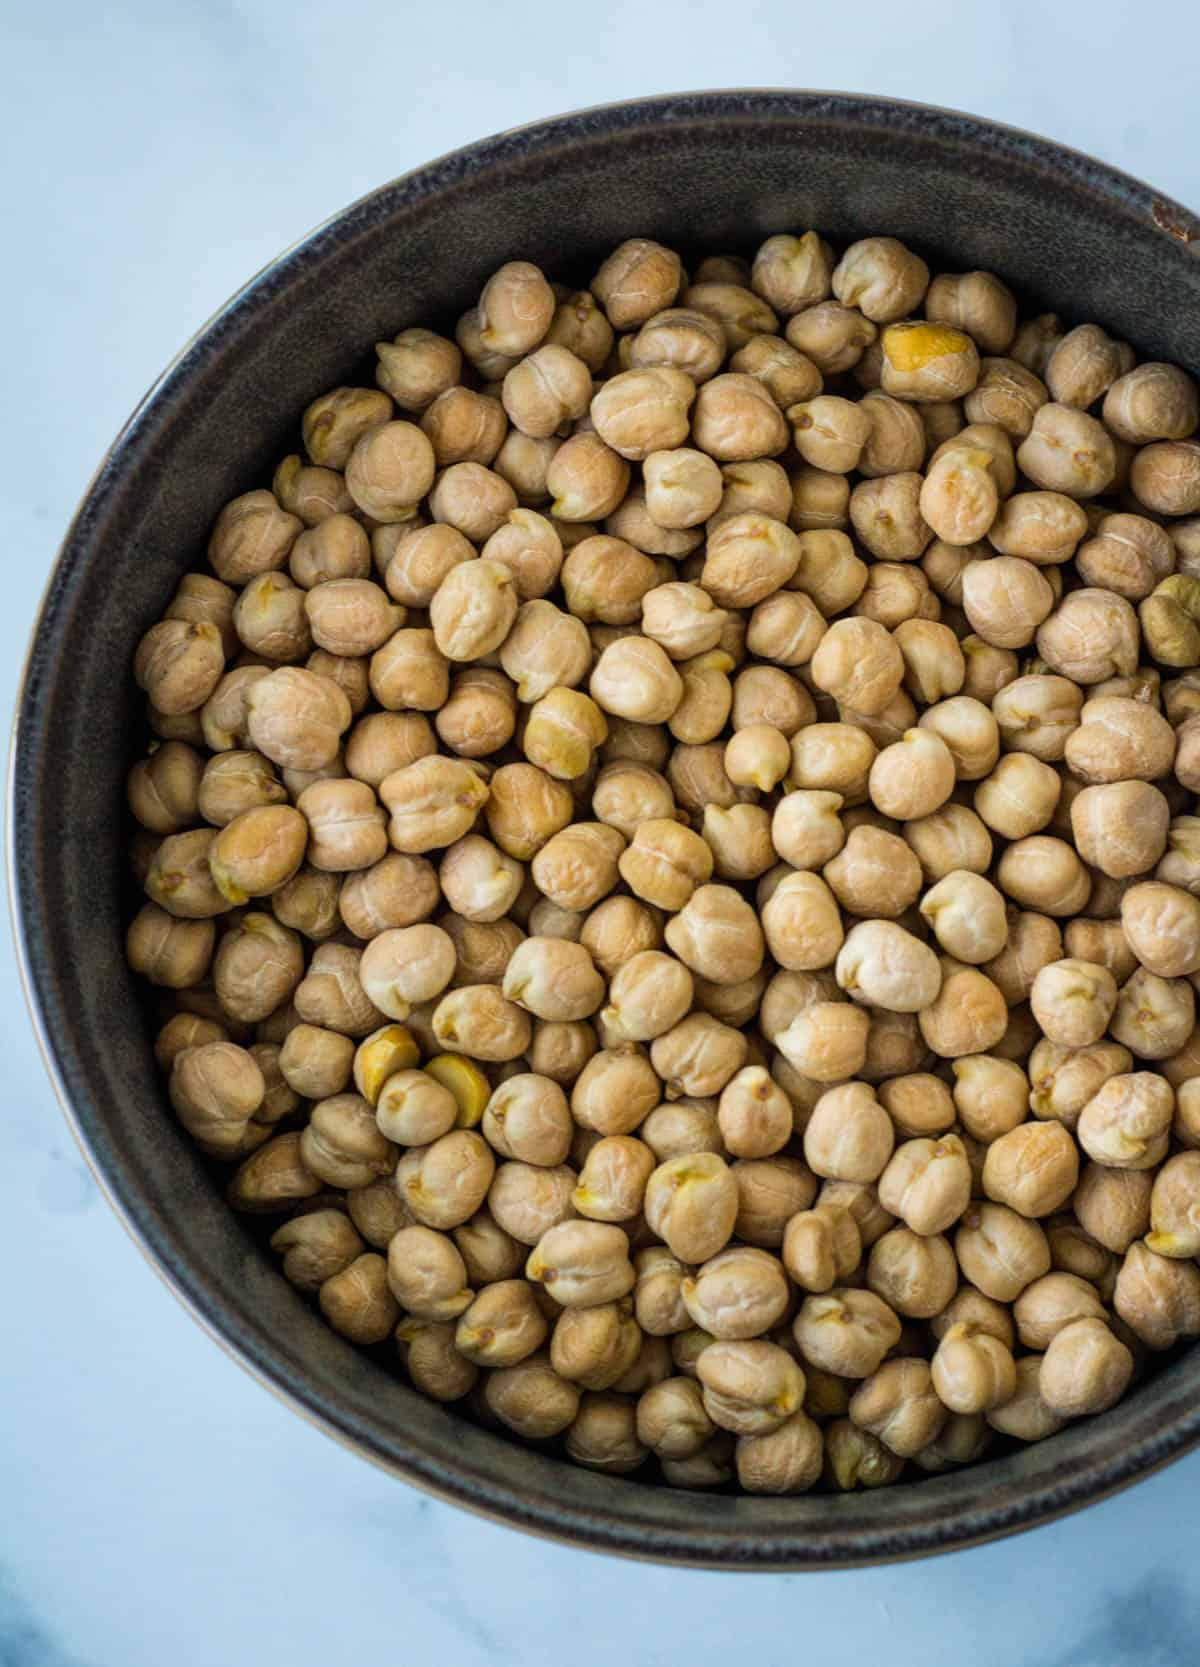 a bowl of dried garbonzo beans, also known as chickpeas